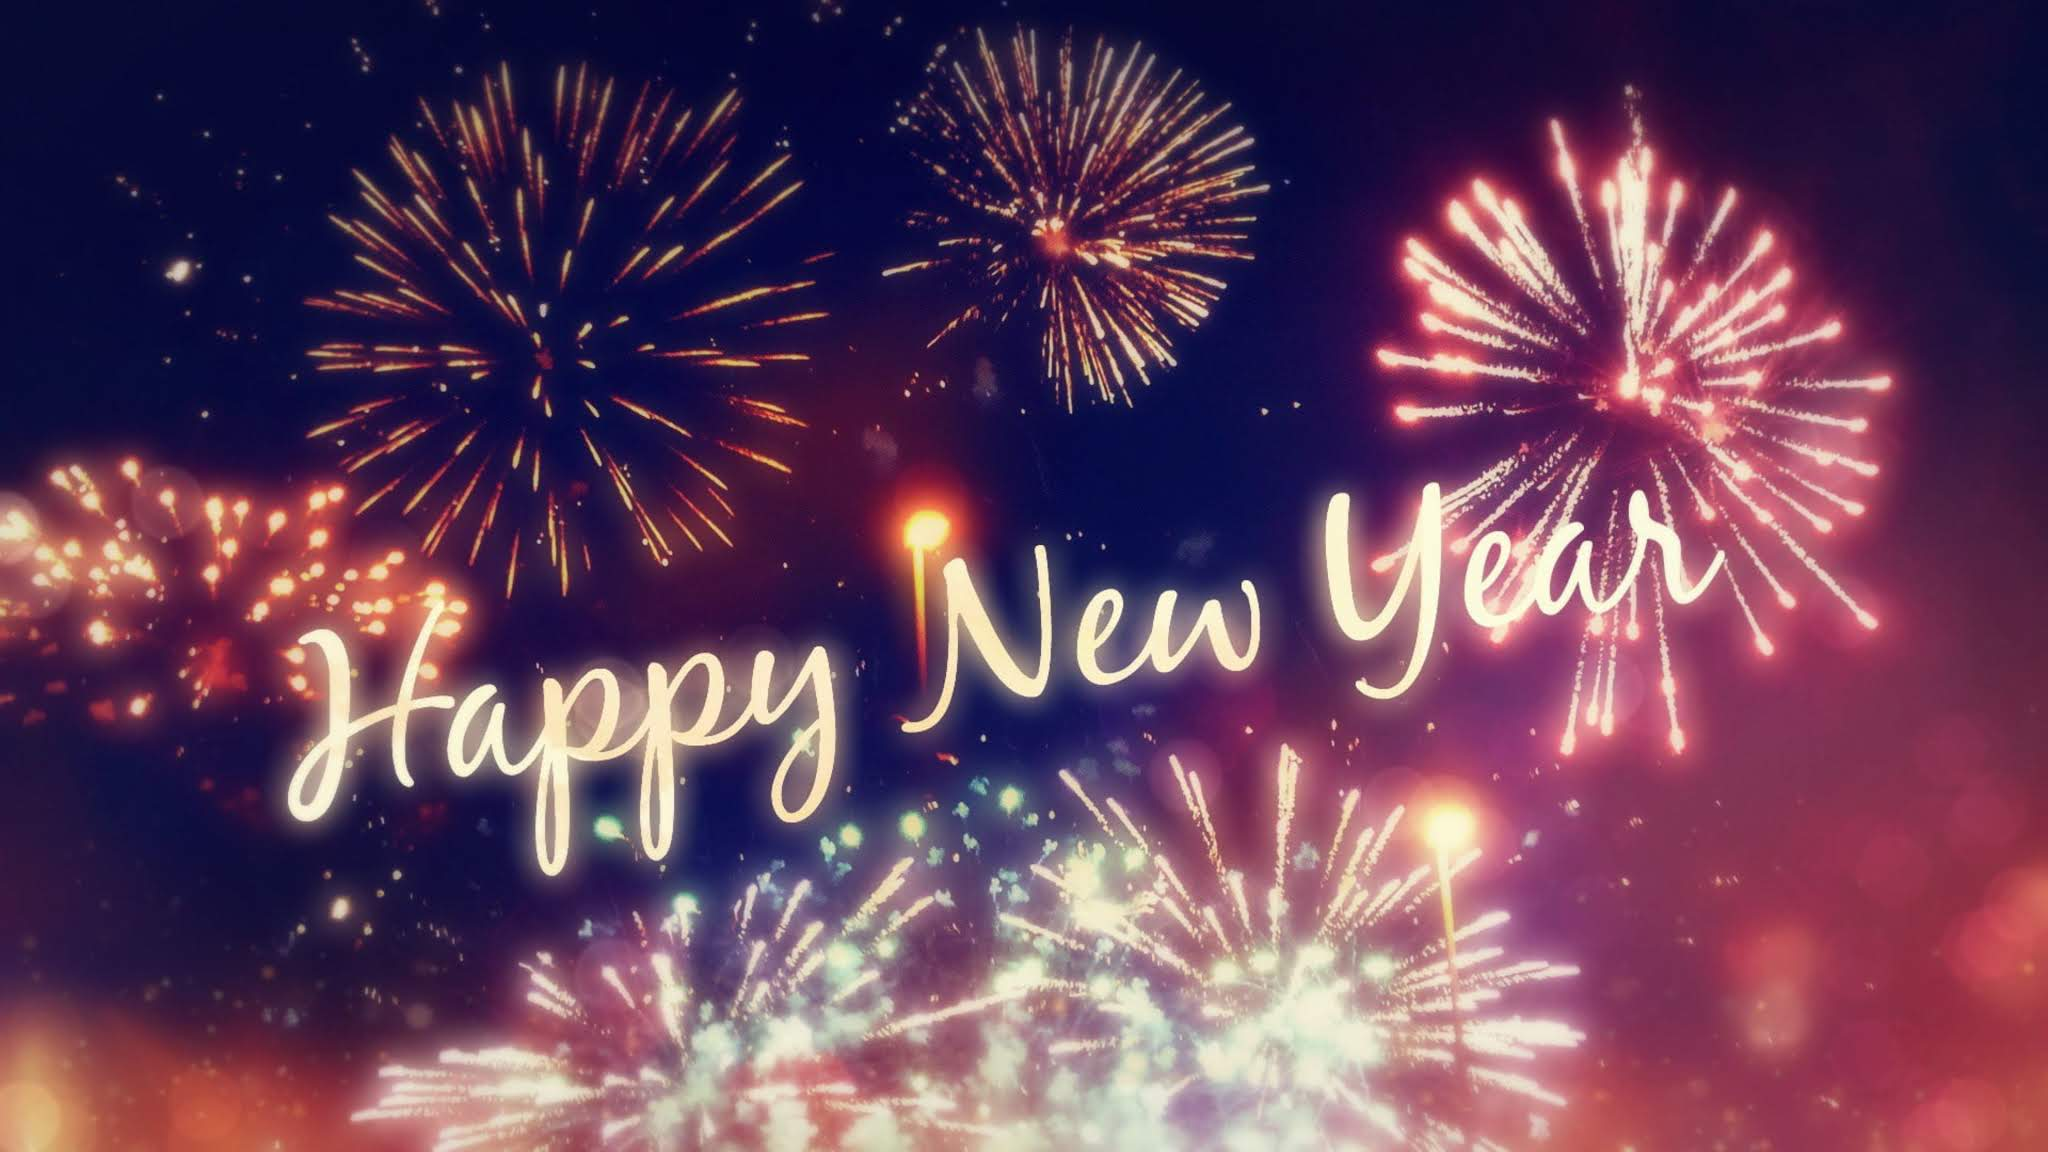 Happy New Year Images, 4k HD Wallpapers - Download